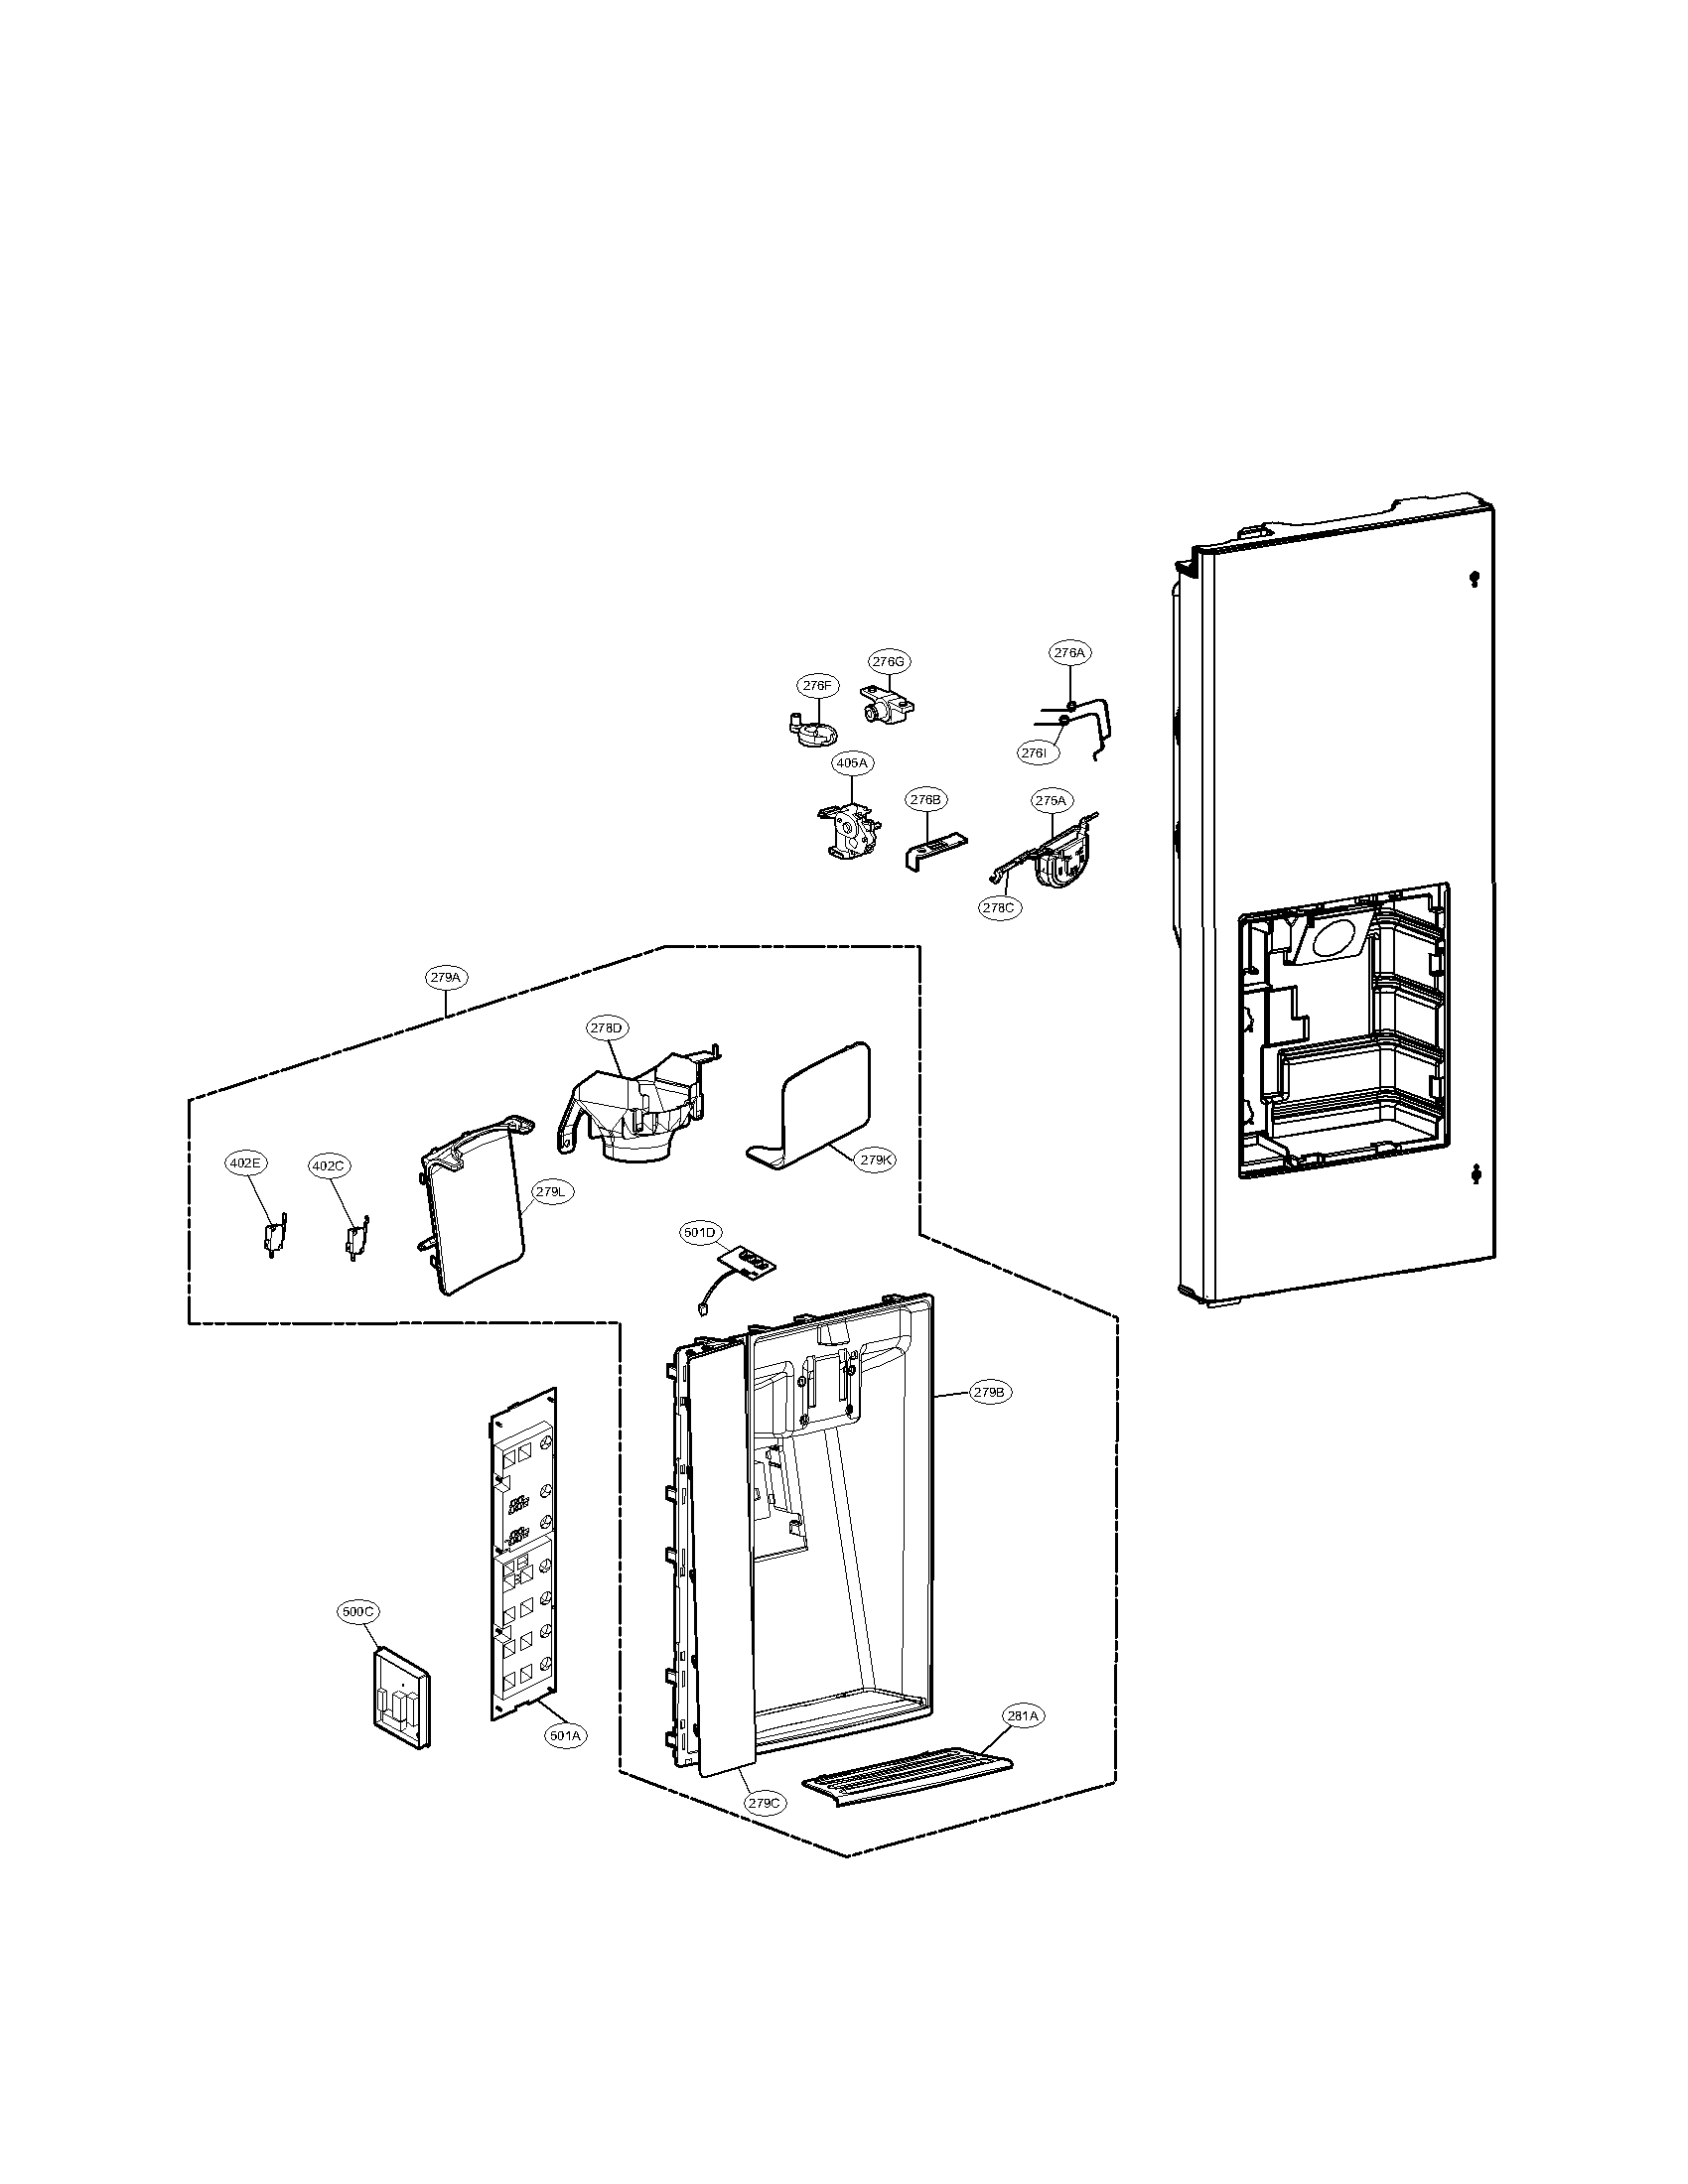 Lg model LFX31925ST/00 bottom-mount refrigerator genuine parts